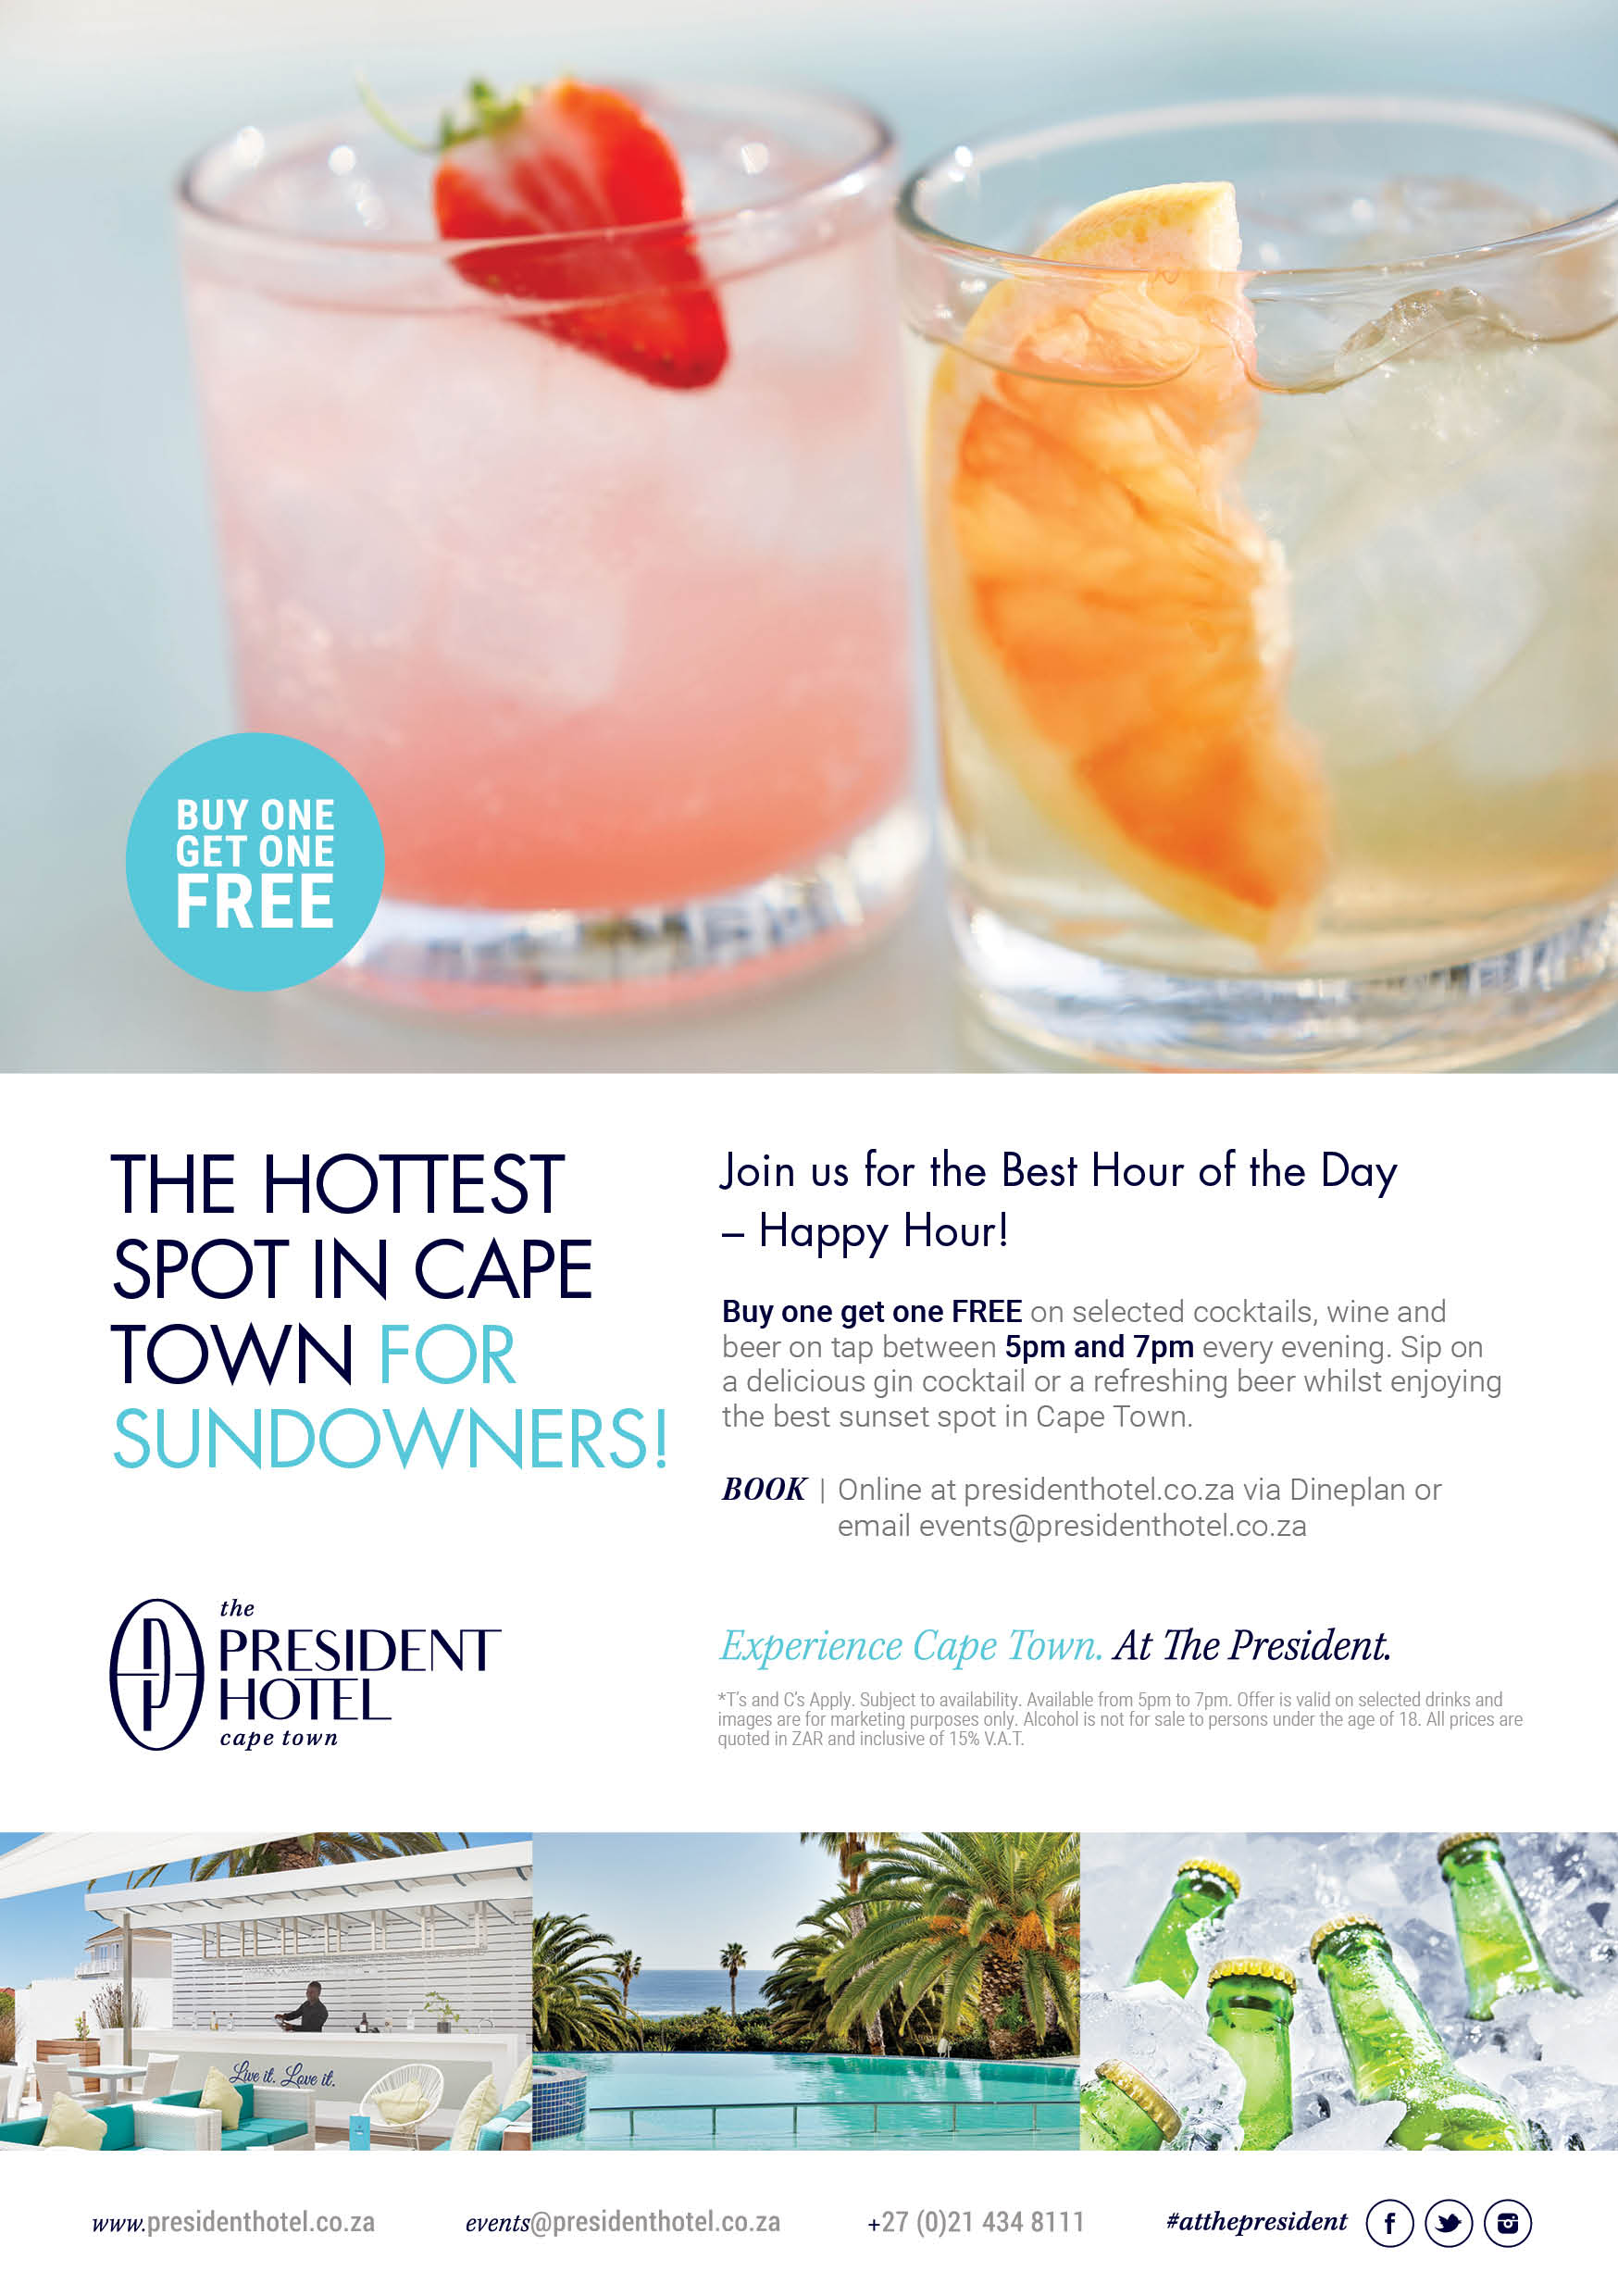 THE HOTTEST SPOT IN CAPE TOWN FOR SUNDOWNERS!